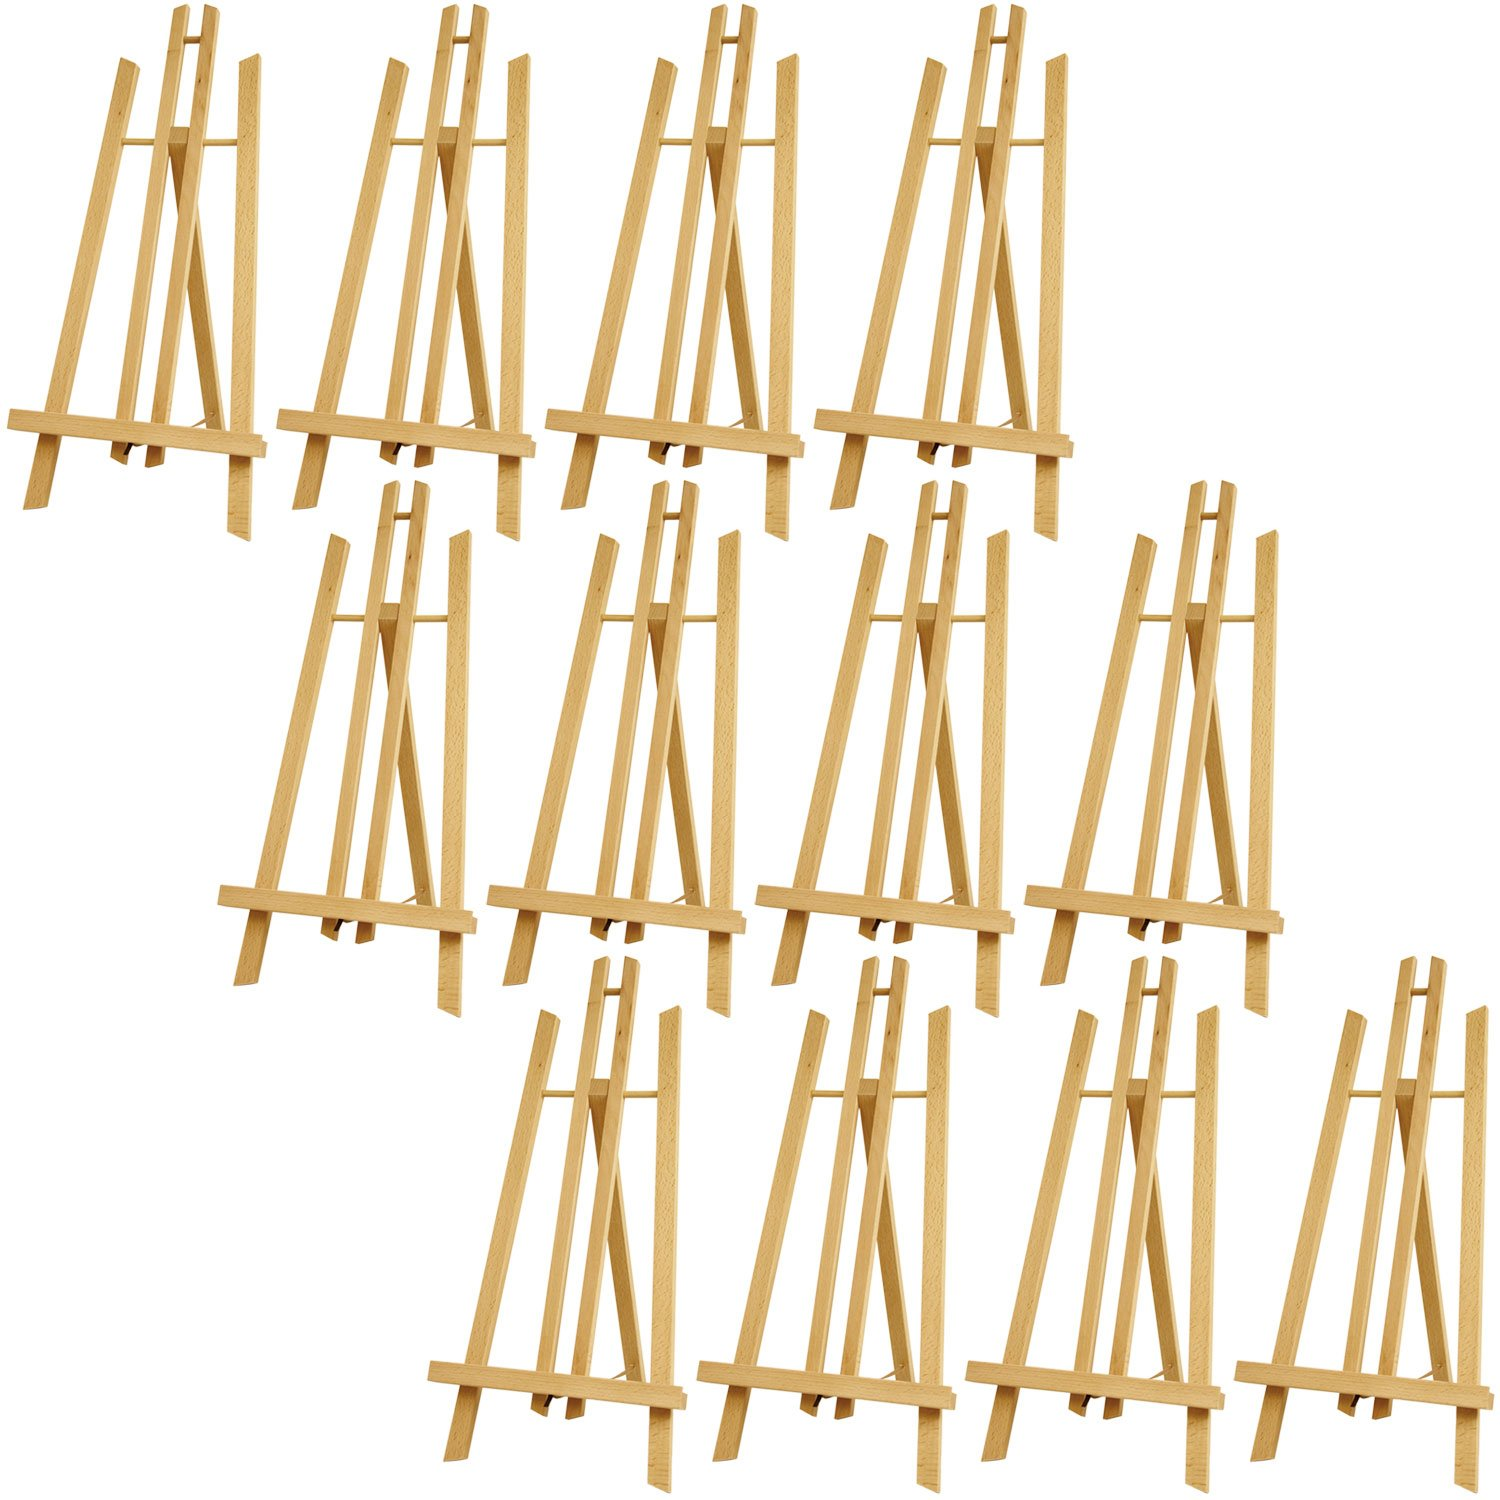 US Art Supply 18'' Large Tabletop Display A-Frame Artist Easel (12-Pack) by US Art Supply (Image #1)